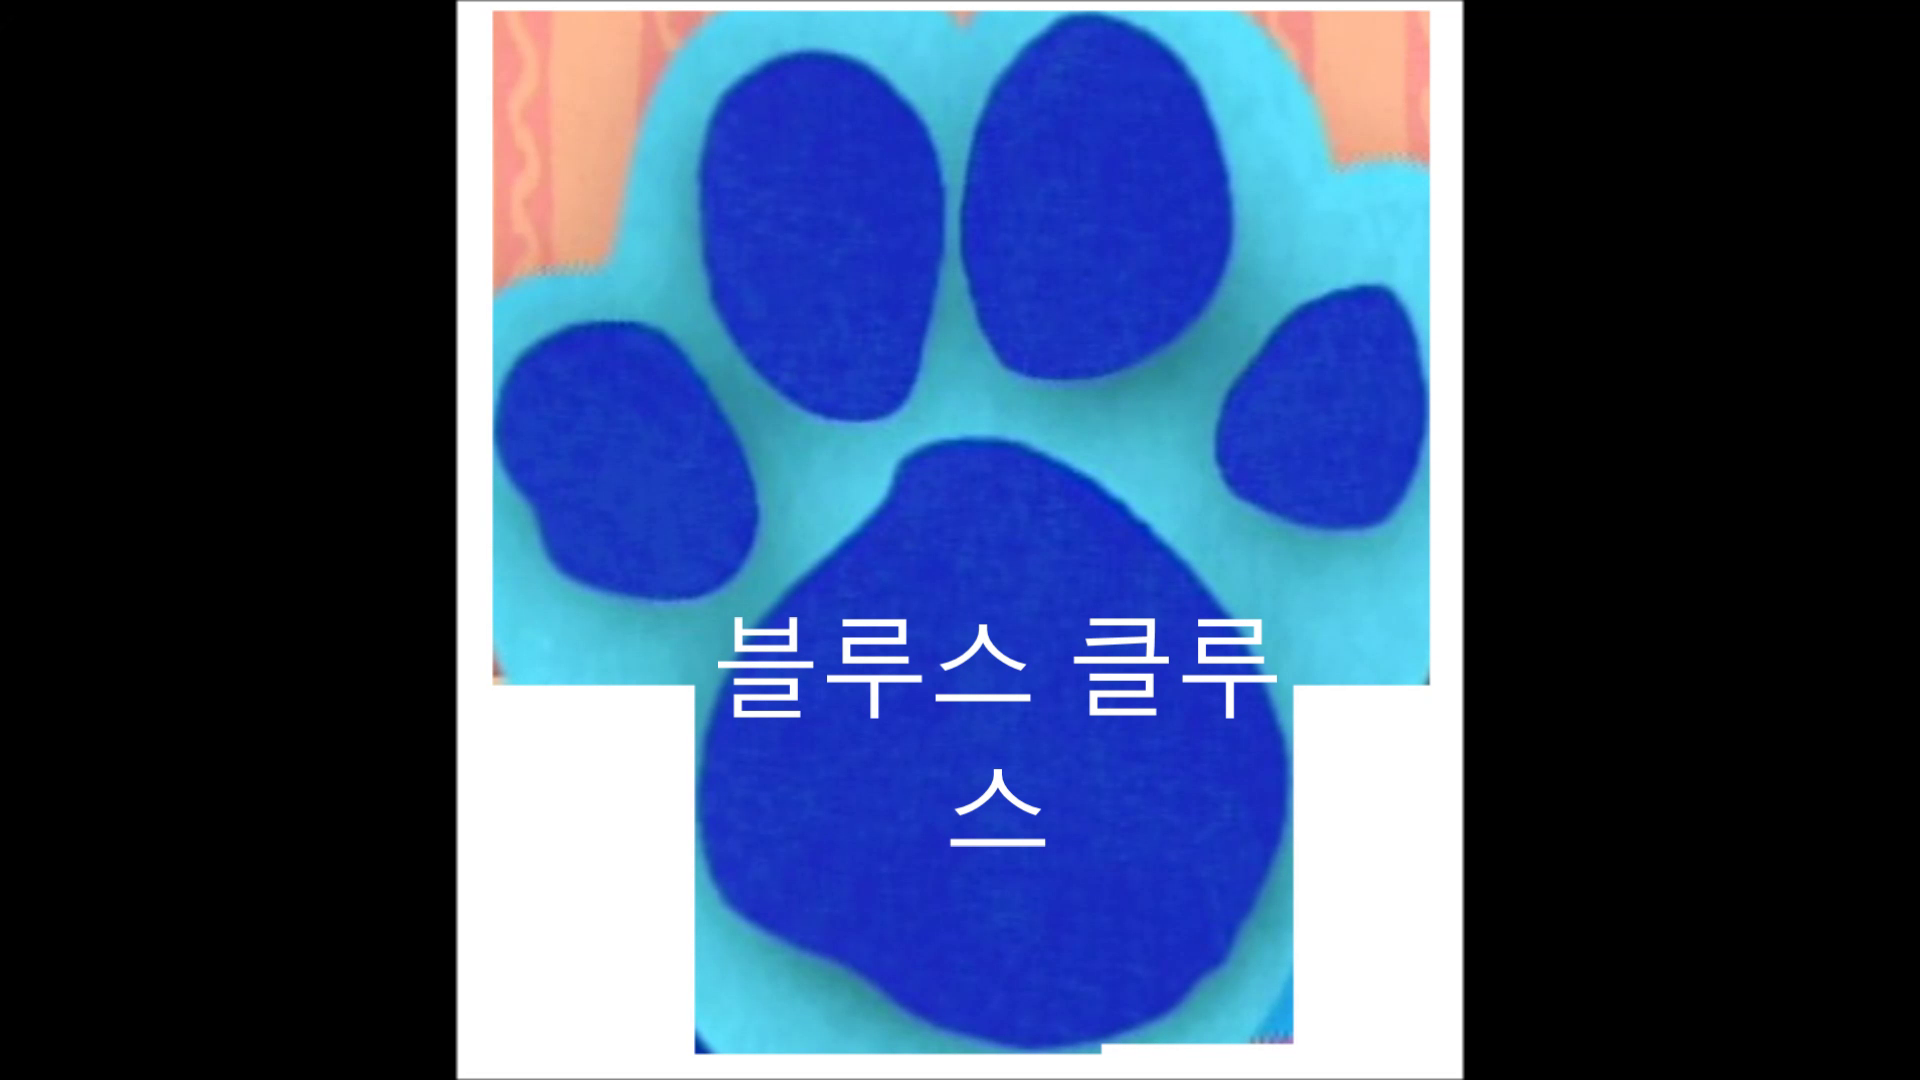 image logo korean blues clues fanmade png lost media archive